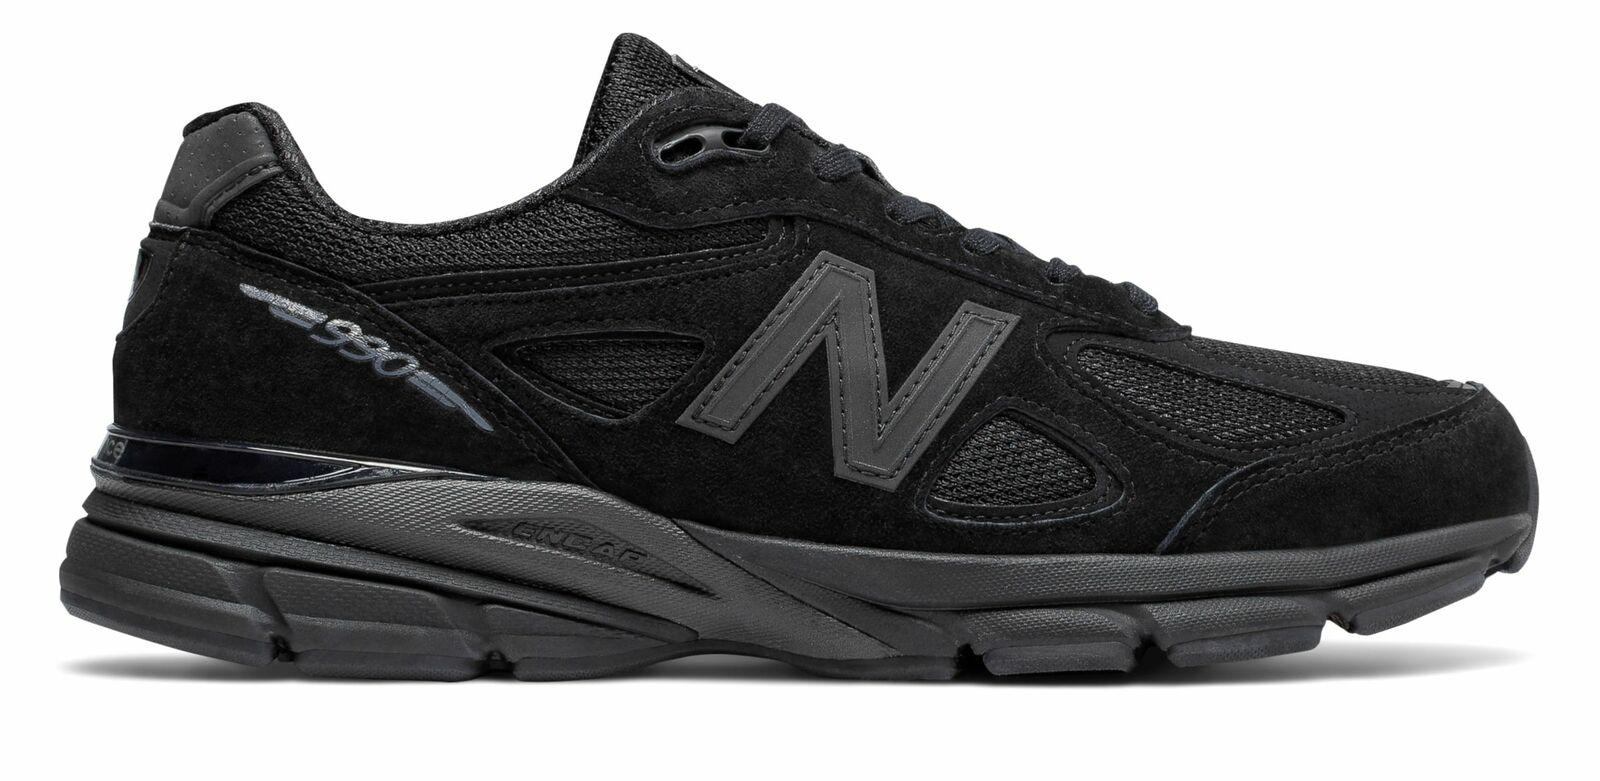 nouveau   Homme 990V4 Made in US Chaussures Noir